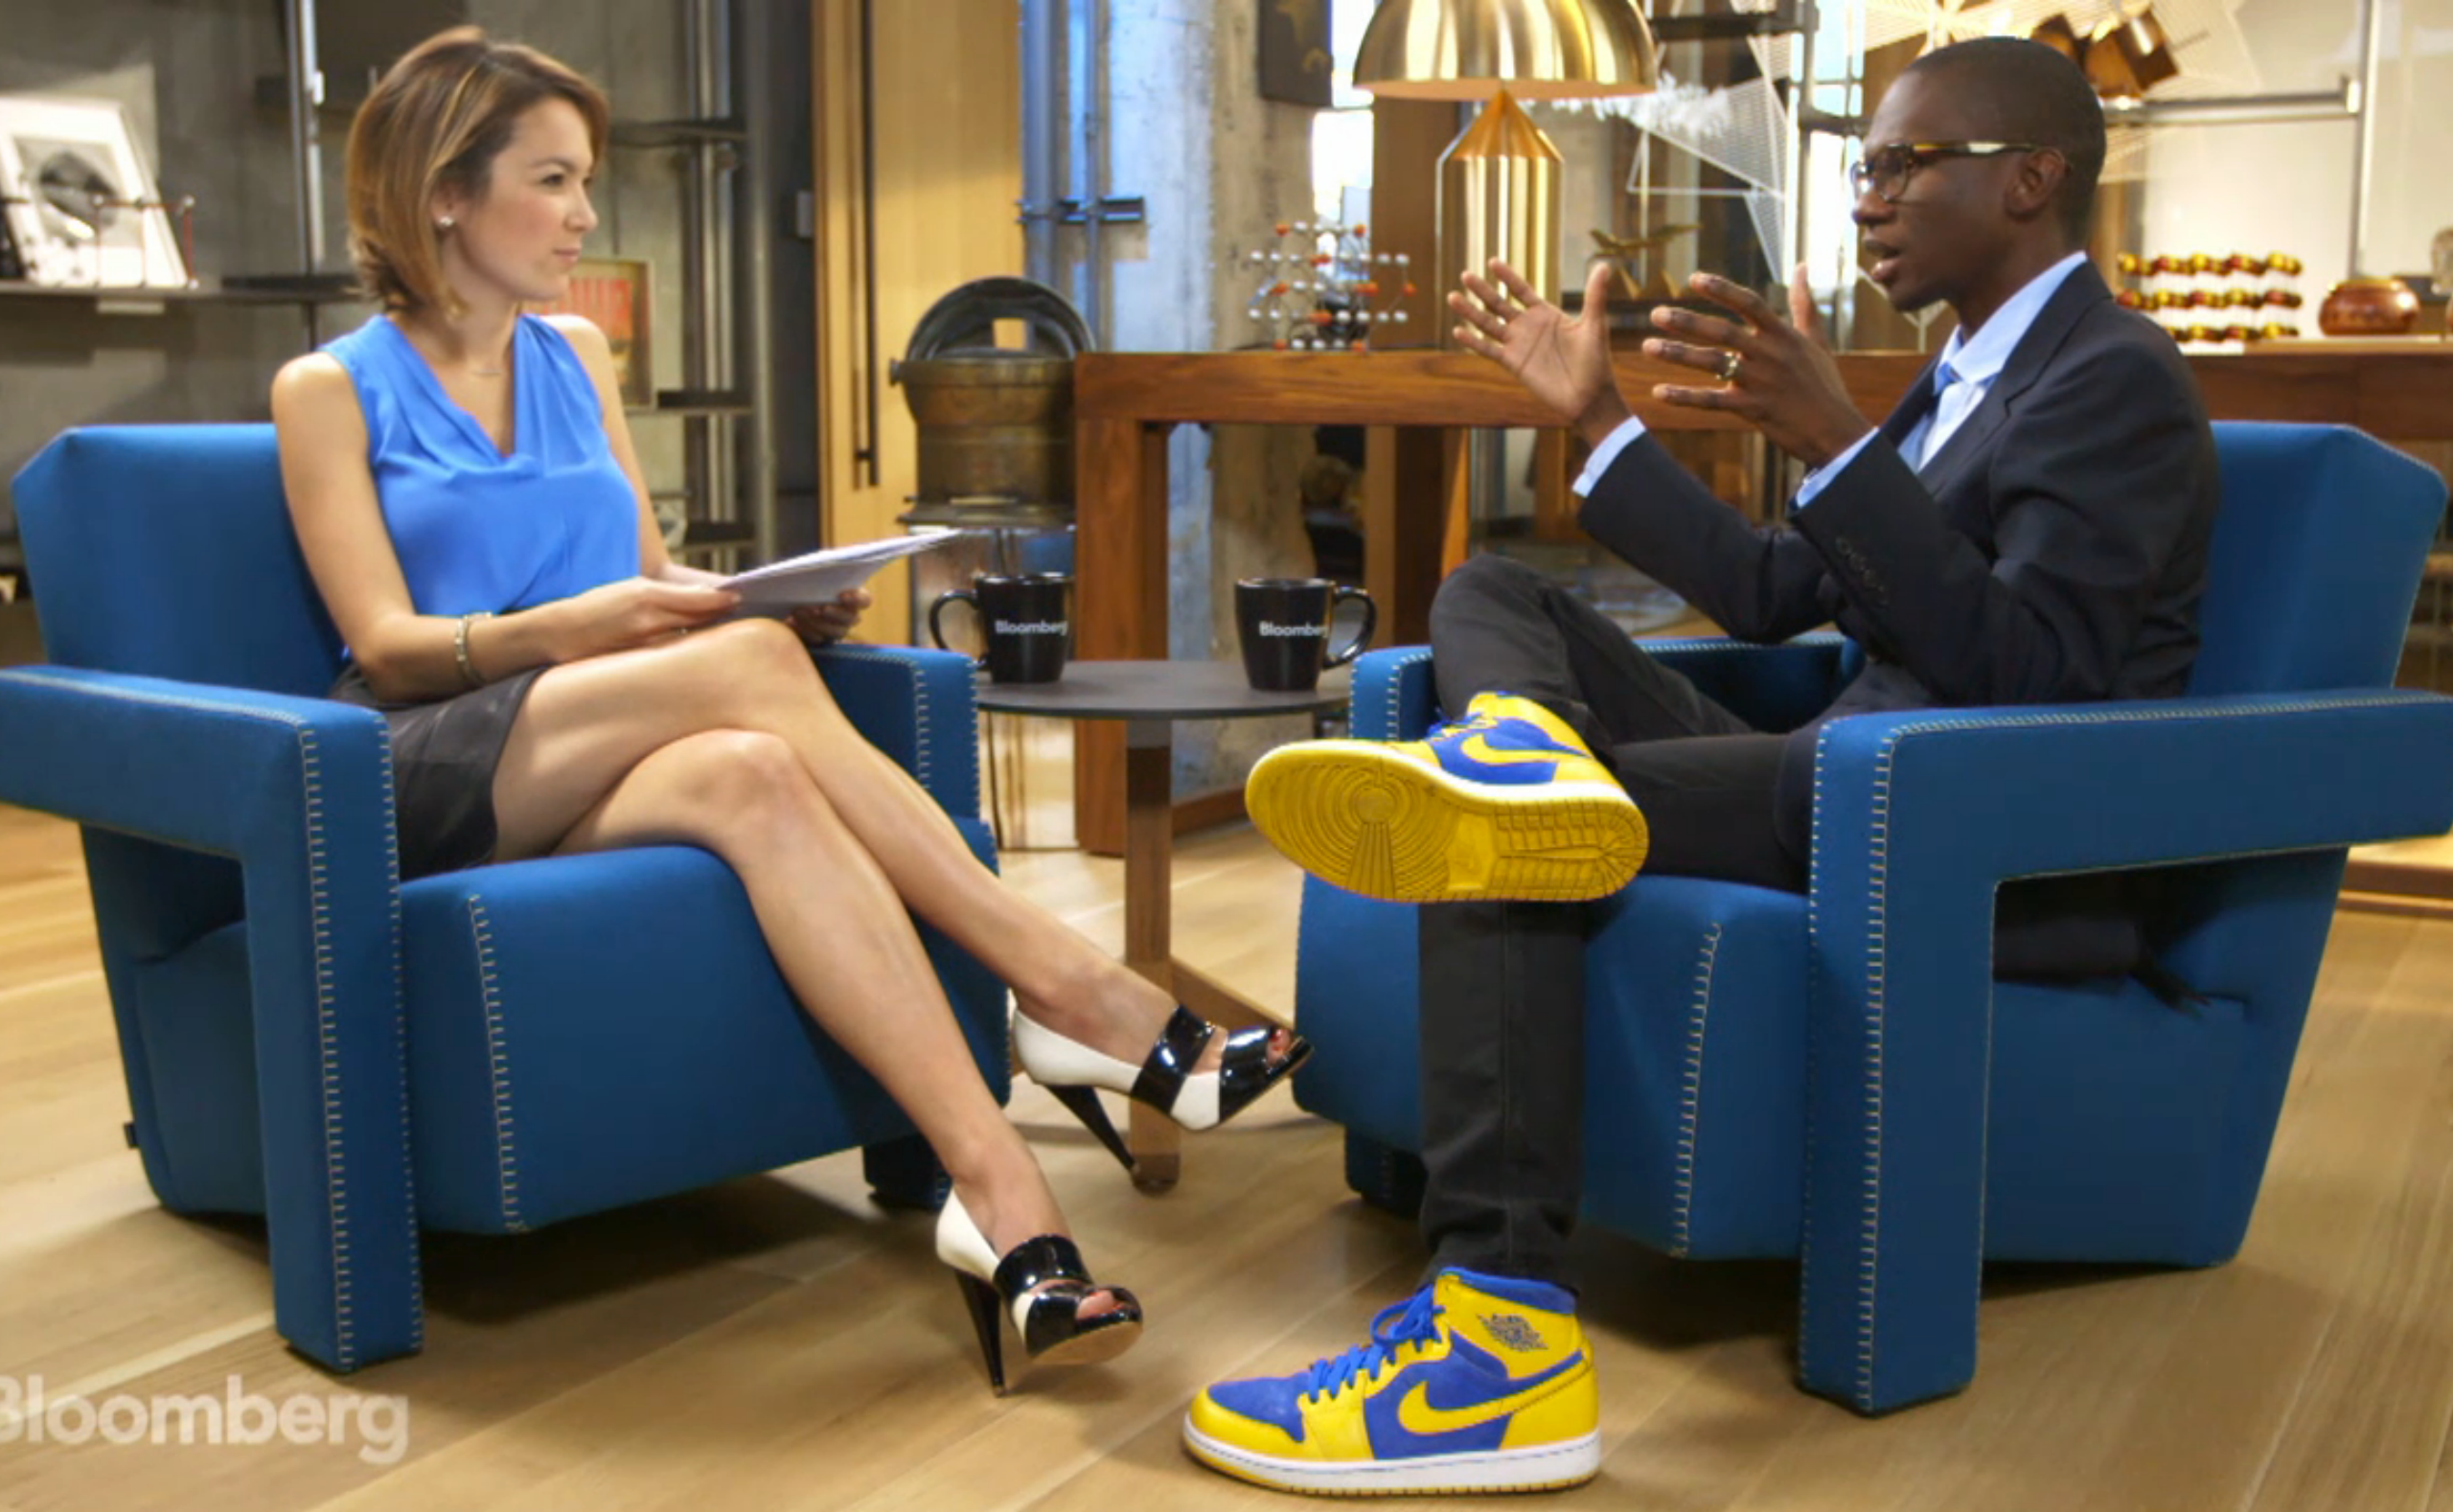 Atom_Factory_CEO_Troy_Carter__Studio_1_0__Full_Show_12_9__-_Bloomberg_Business